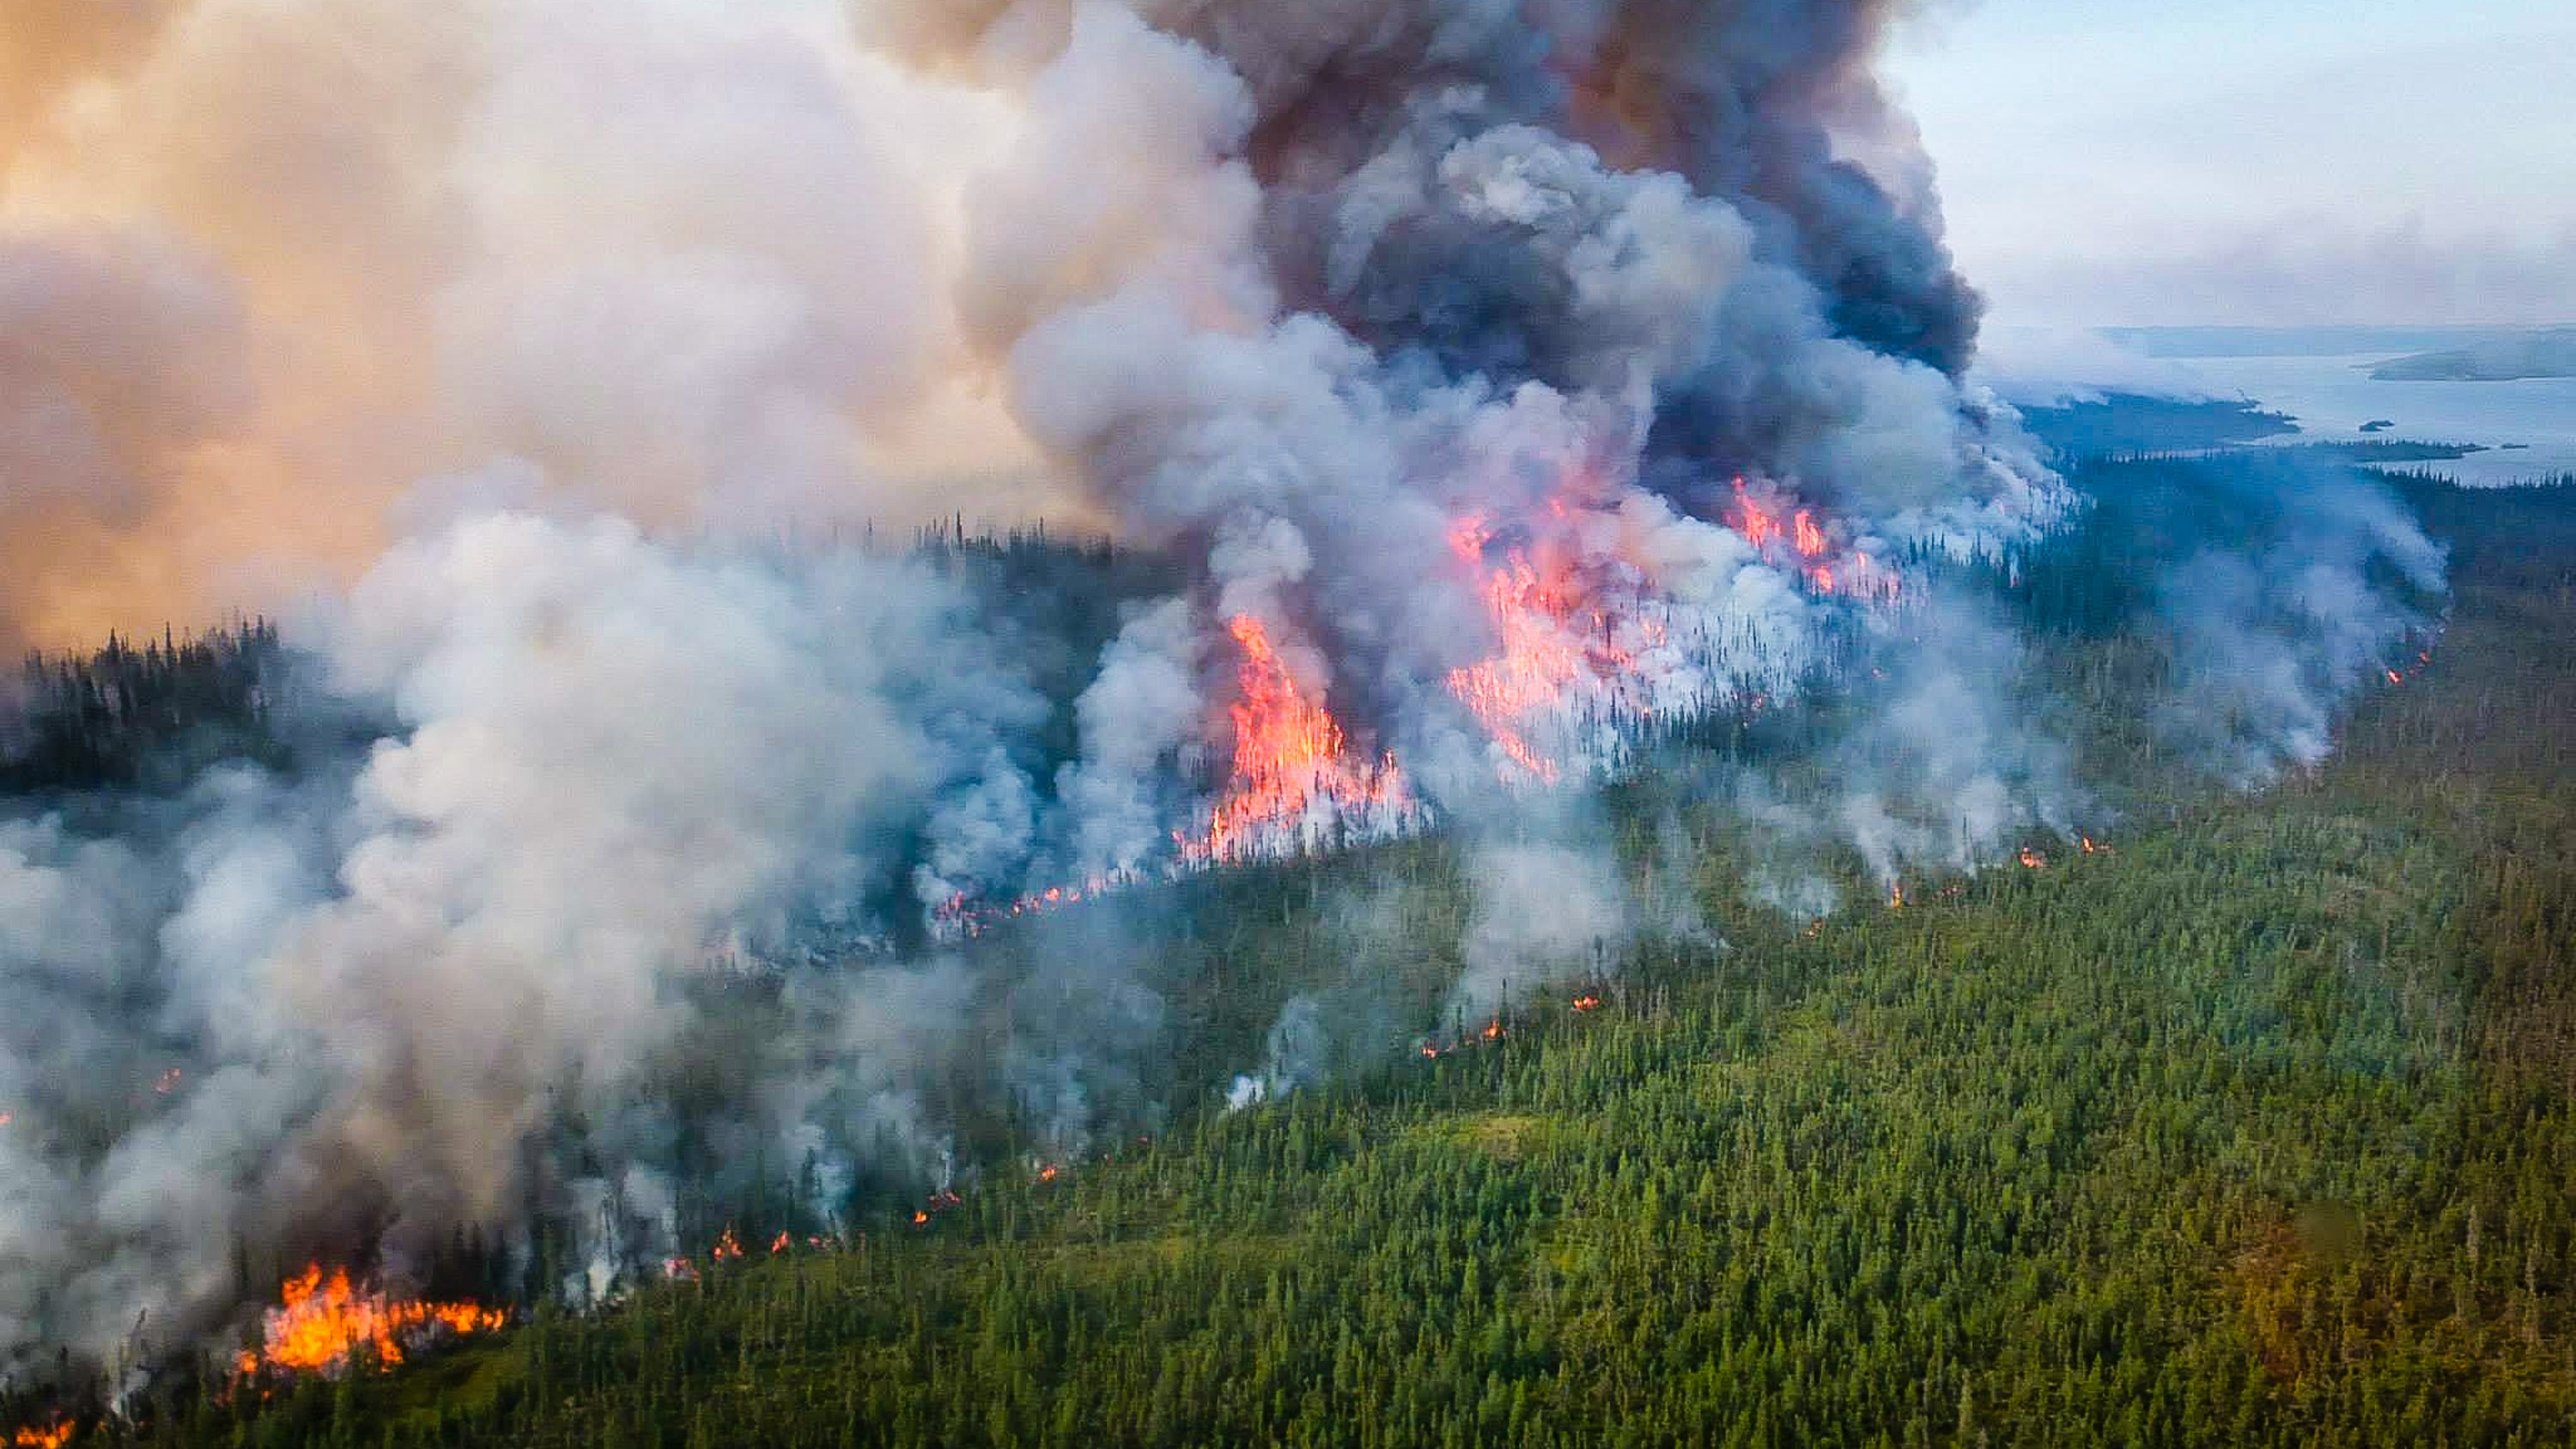 A territorial government photo shows a prescribed burn operation at Plummers Lodge during the 2014 wildfire season